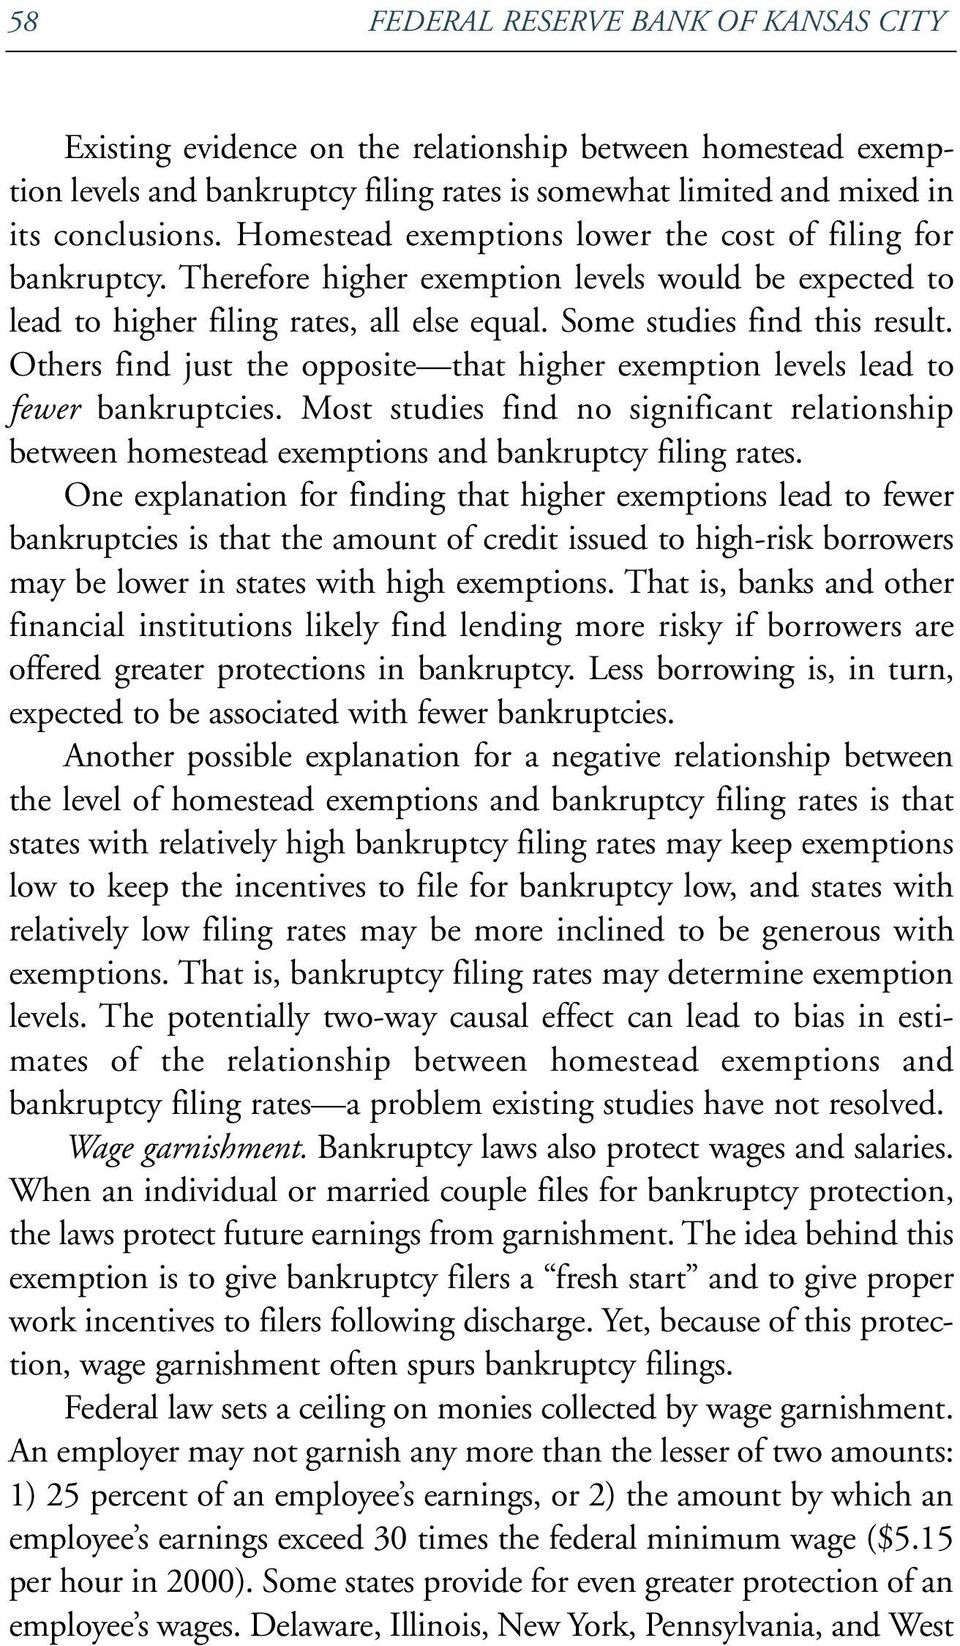 Others find just the opposite that higher exemption levels lead to fewer bankruptcies. Most studies find no significant relationship between homestead exemptions and bankruptcy filing rates.